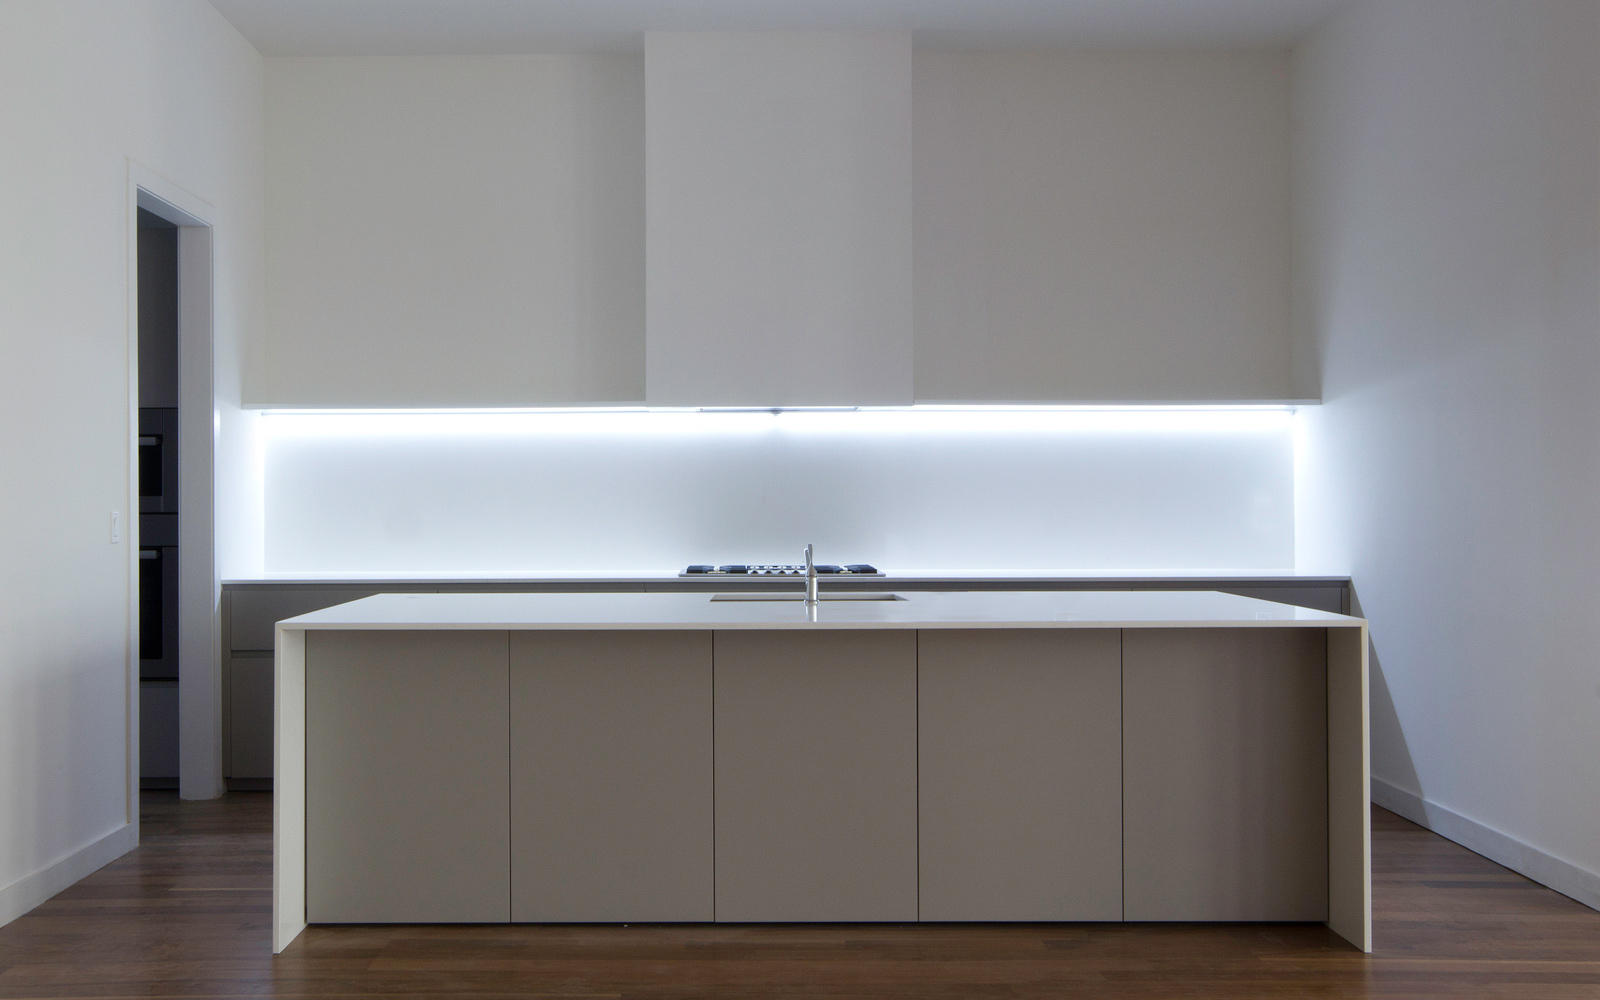 sculpture kitchens in tribeca part 1 led kitchen light Minimal USA Glam Kitchen at 88 Franklin Street NYC